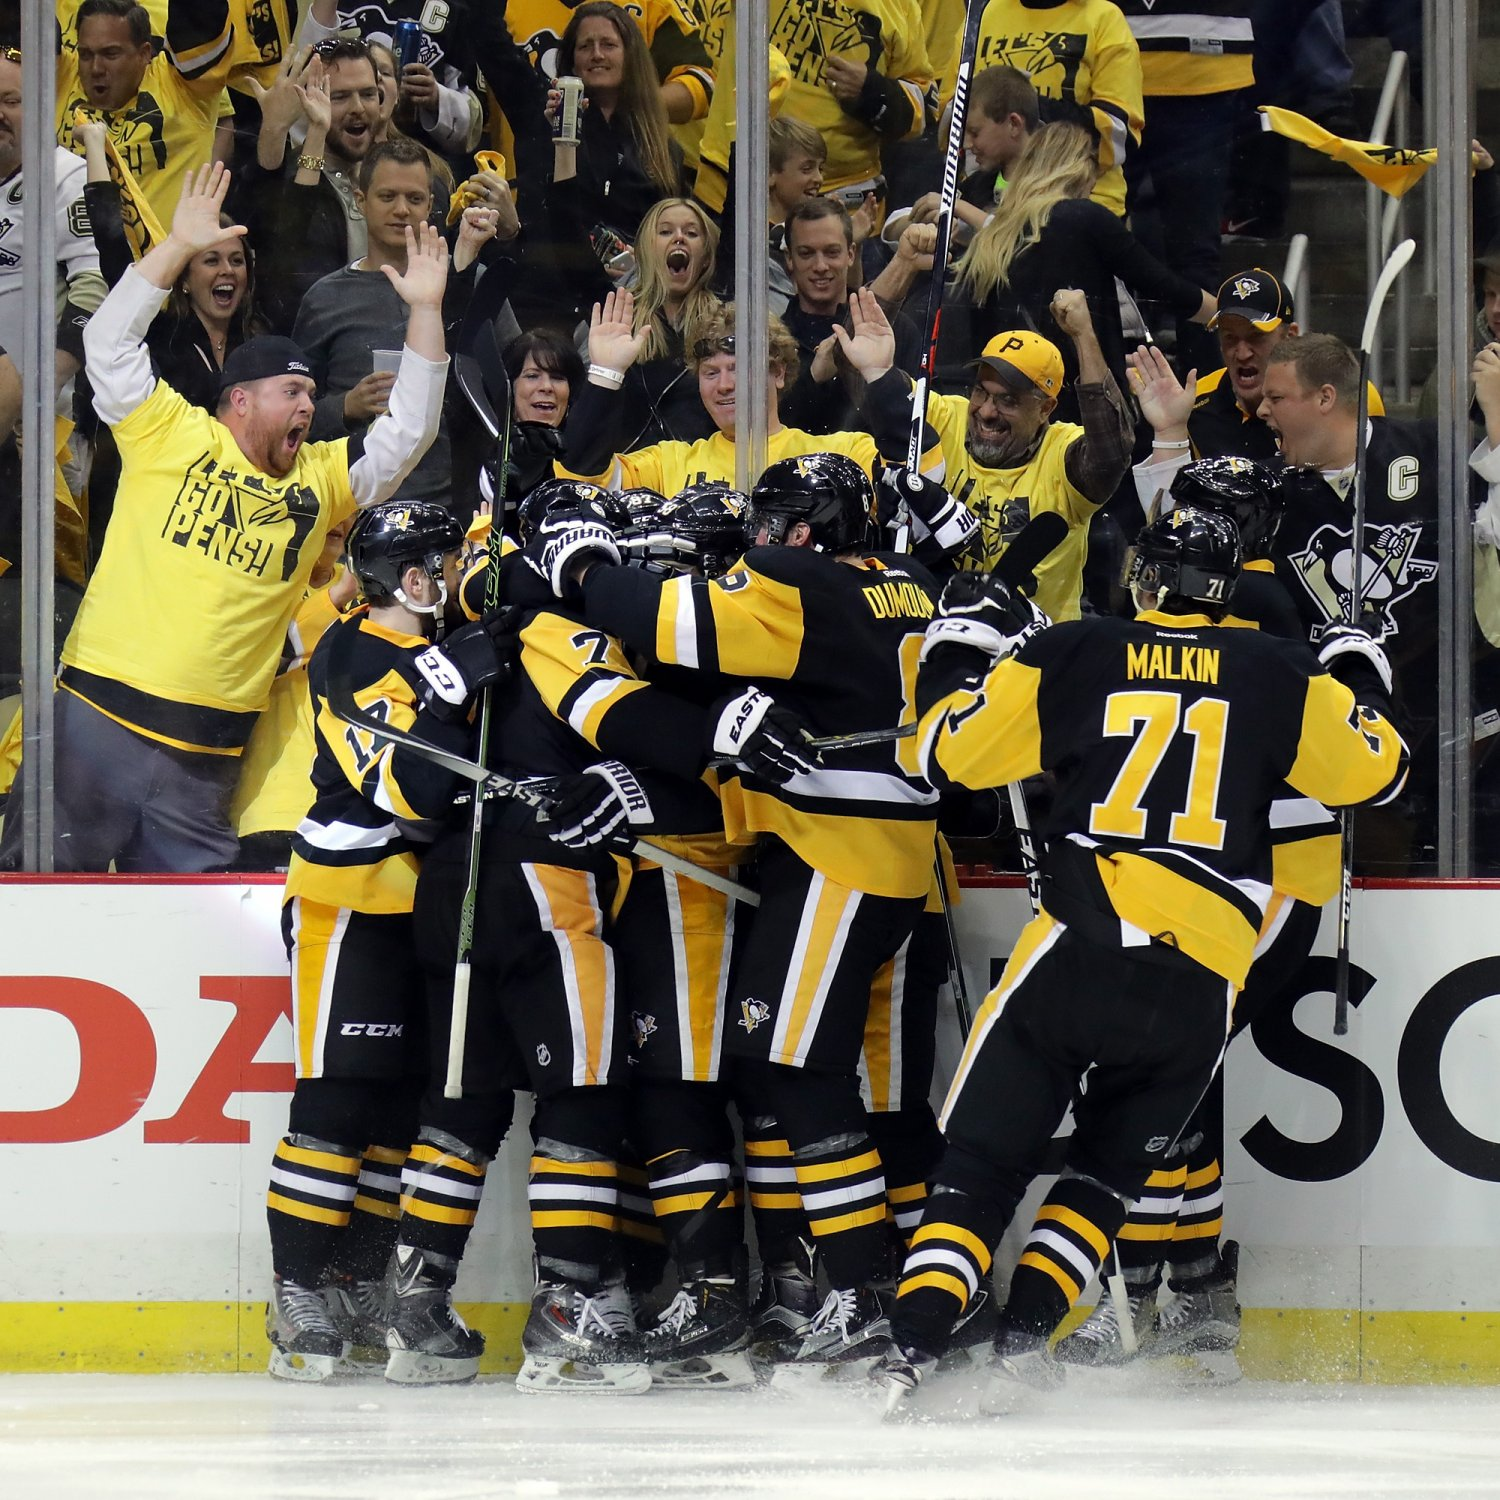 Lightning vs. Penguins: Game 2 Score and Twitter Reaction from 2016 NHL Playoffs | Bleacher Report